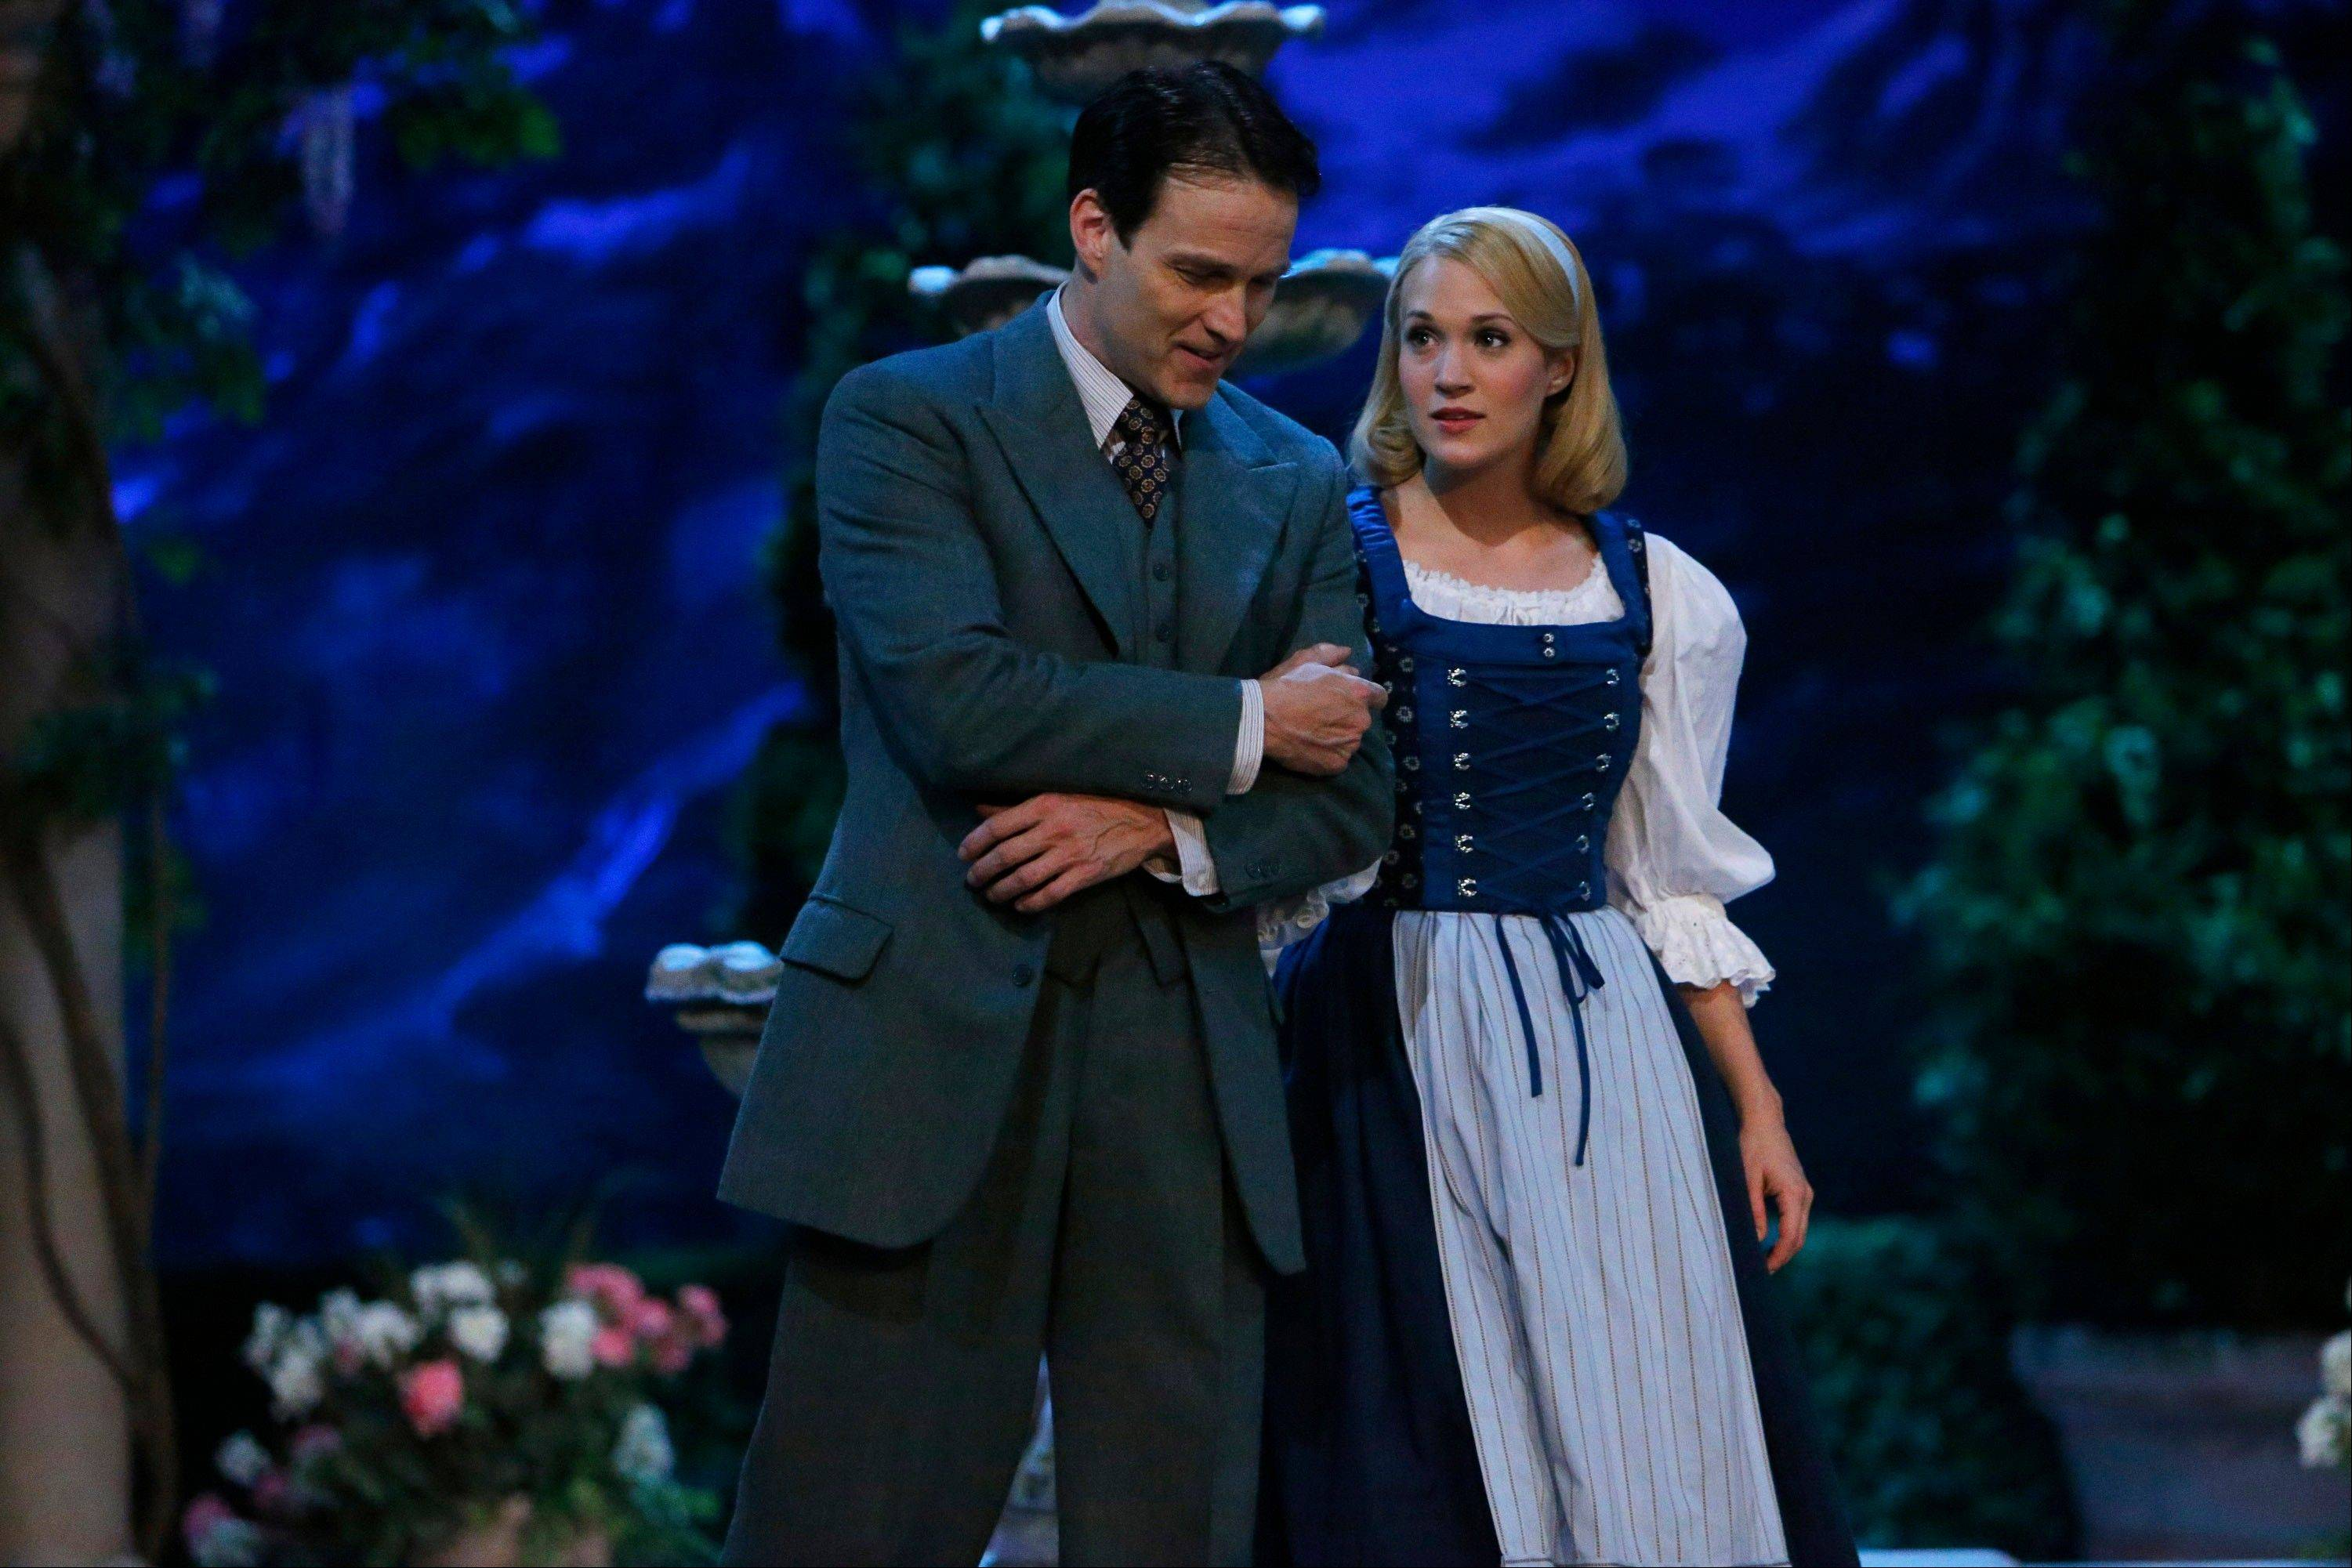 Stephen Moyer as Captain Von Trapp and Carrie Underwood as Maria drew high viewership for NBC�s �The Sound of Music Live!�